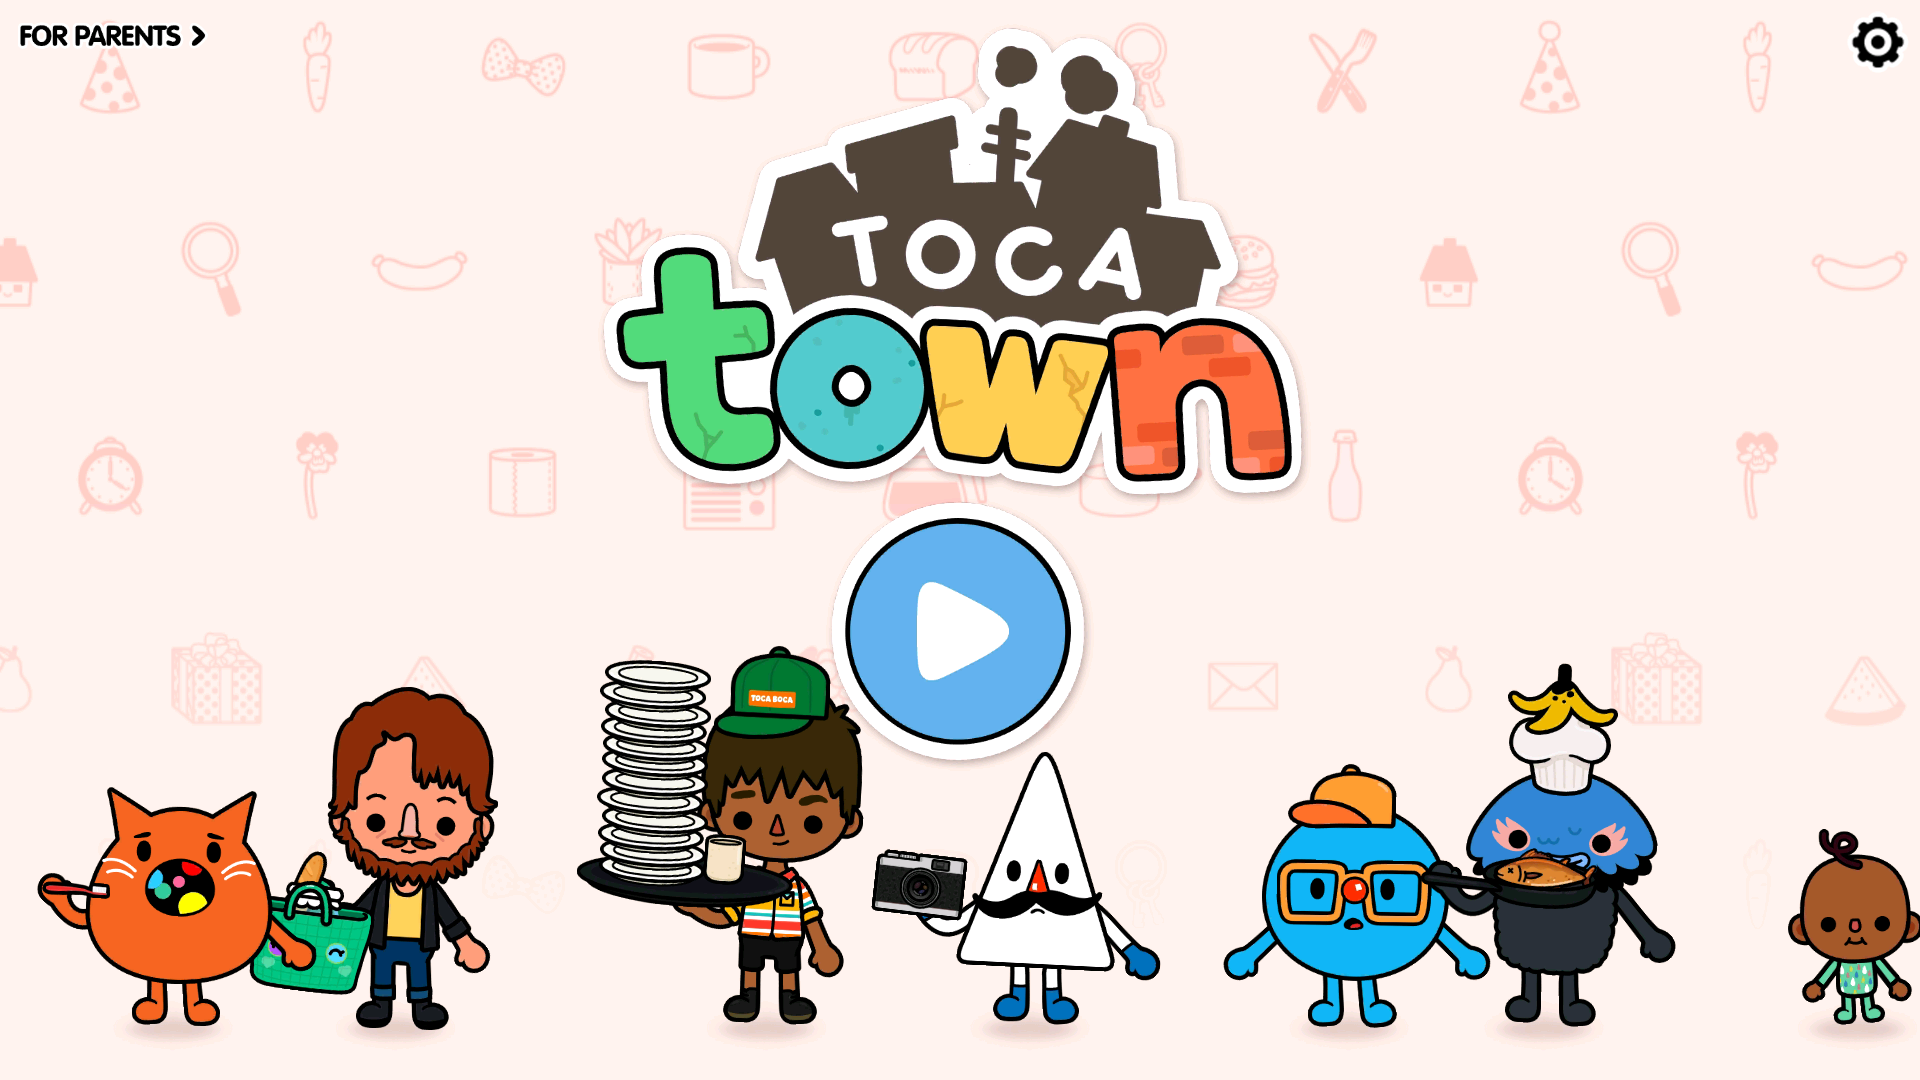 tocatown1